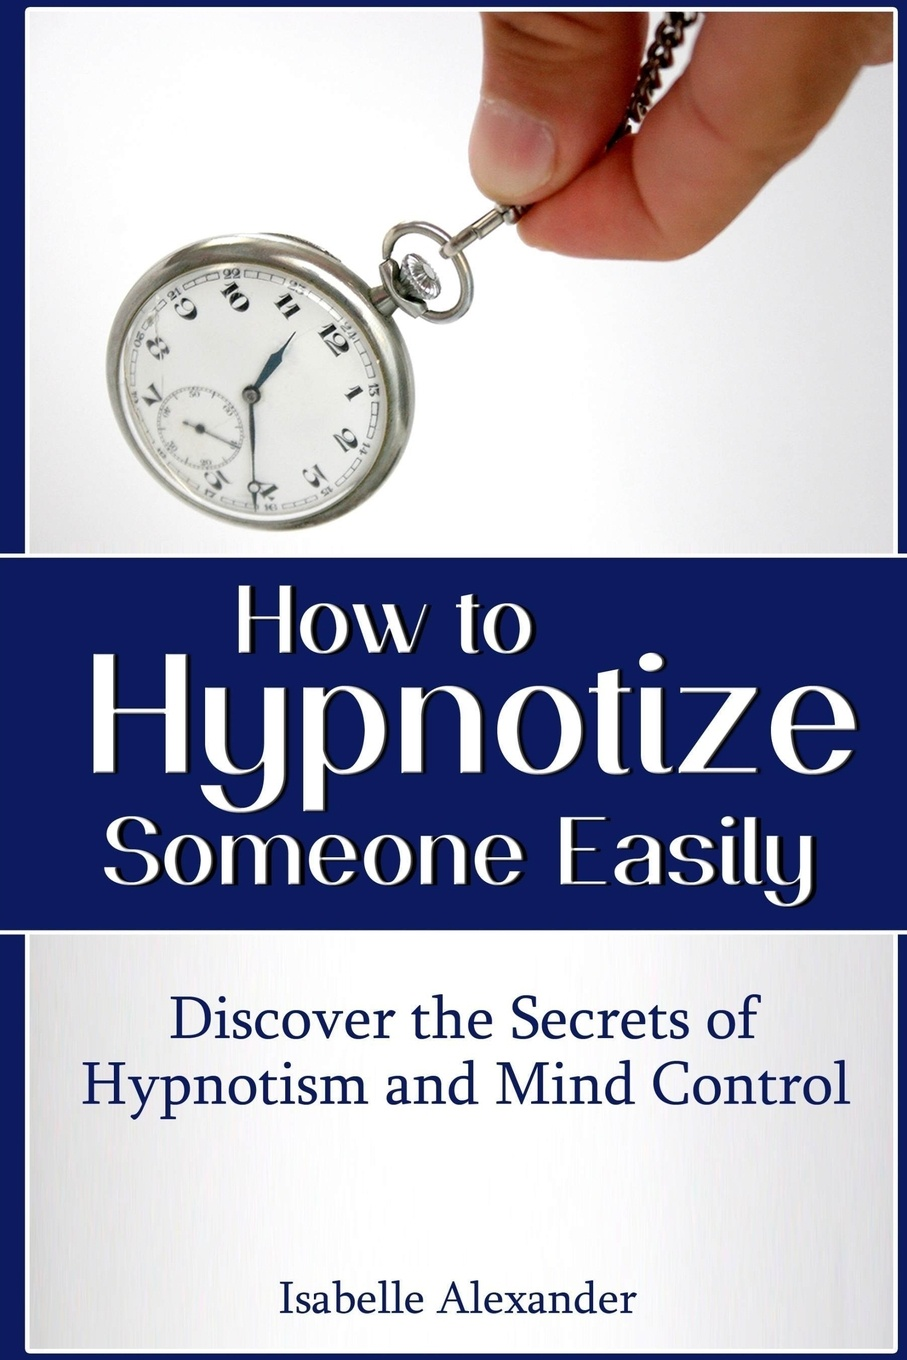 Isabelle Alexander How to Hypnotize Someone Easily. Discover the Secrets of Hypnotism and Mind Control ford saeks superpower how to think act and perform with less effort and better results